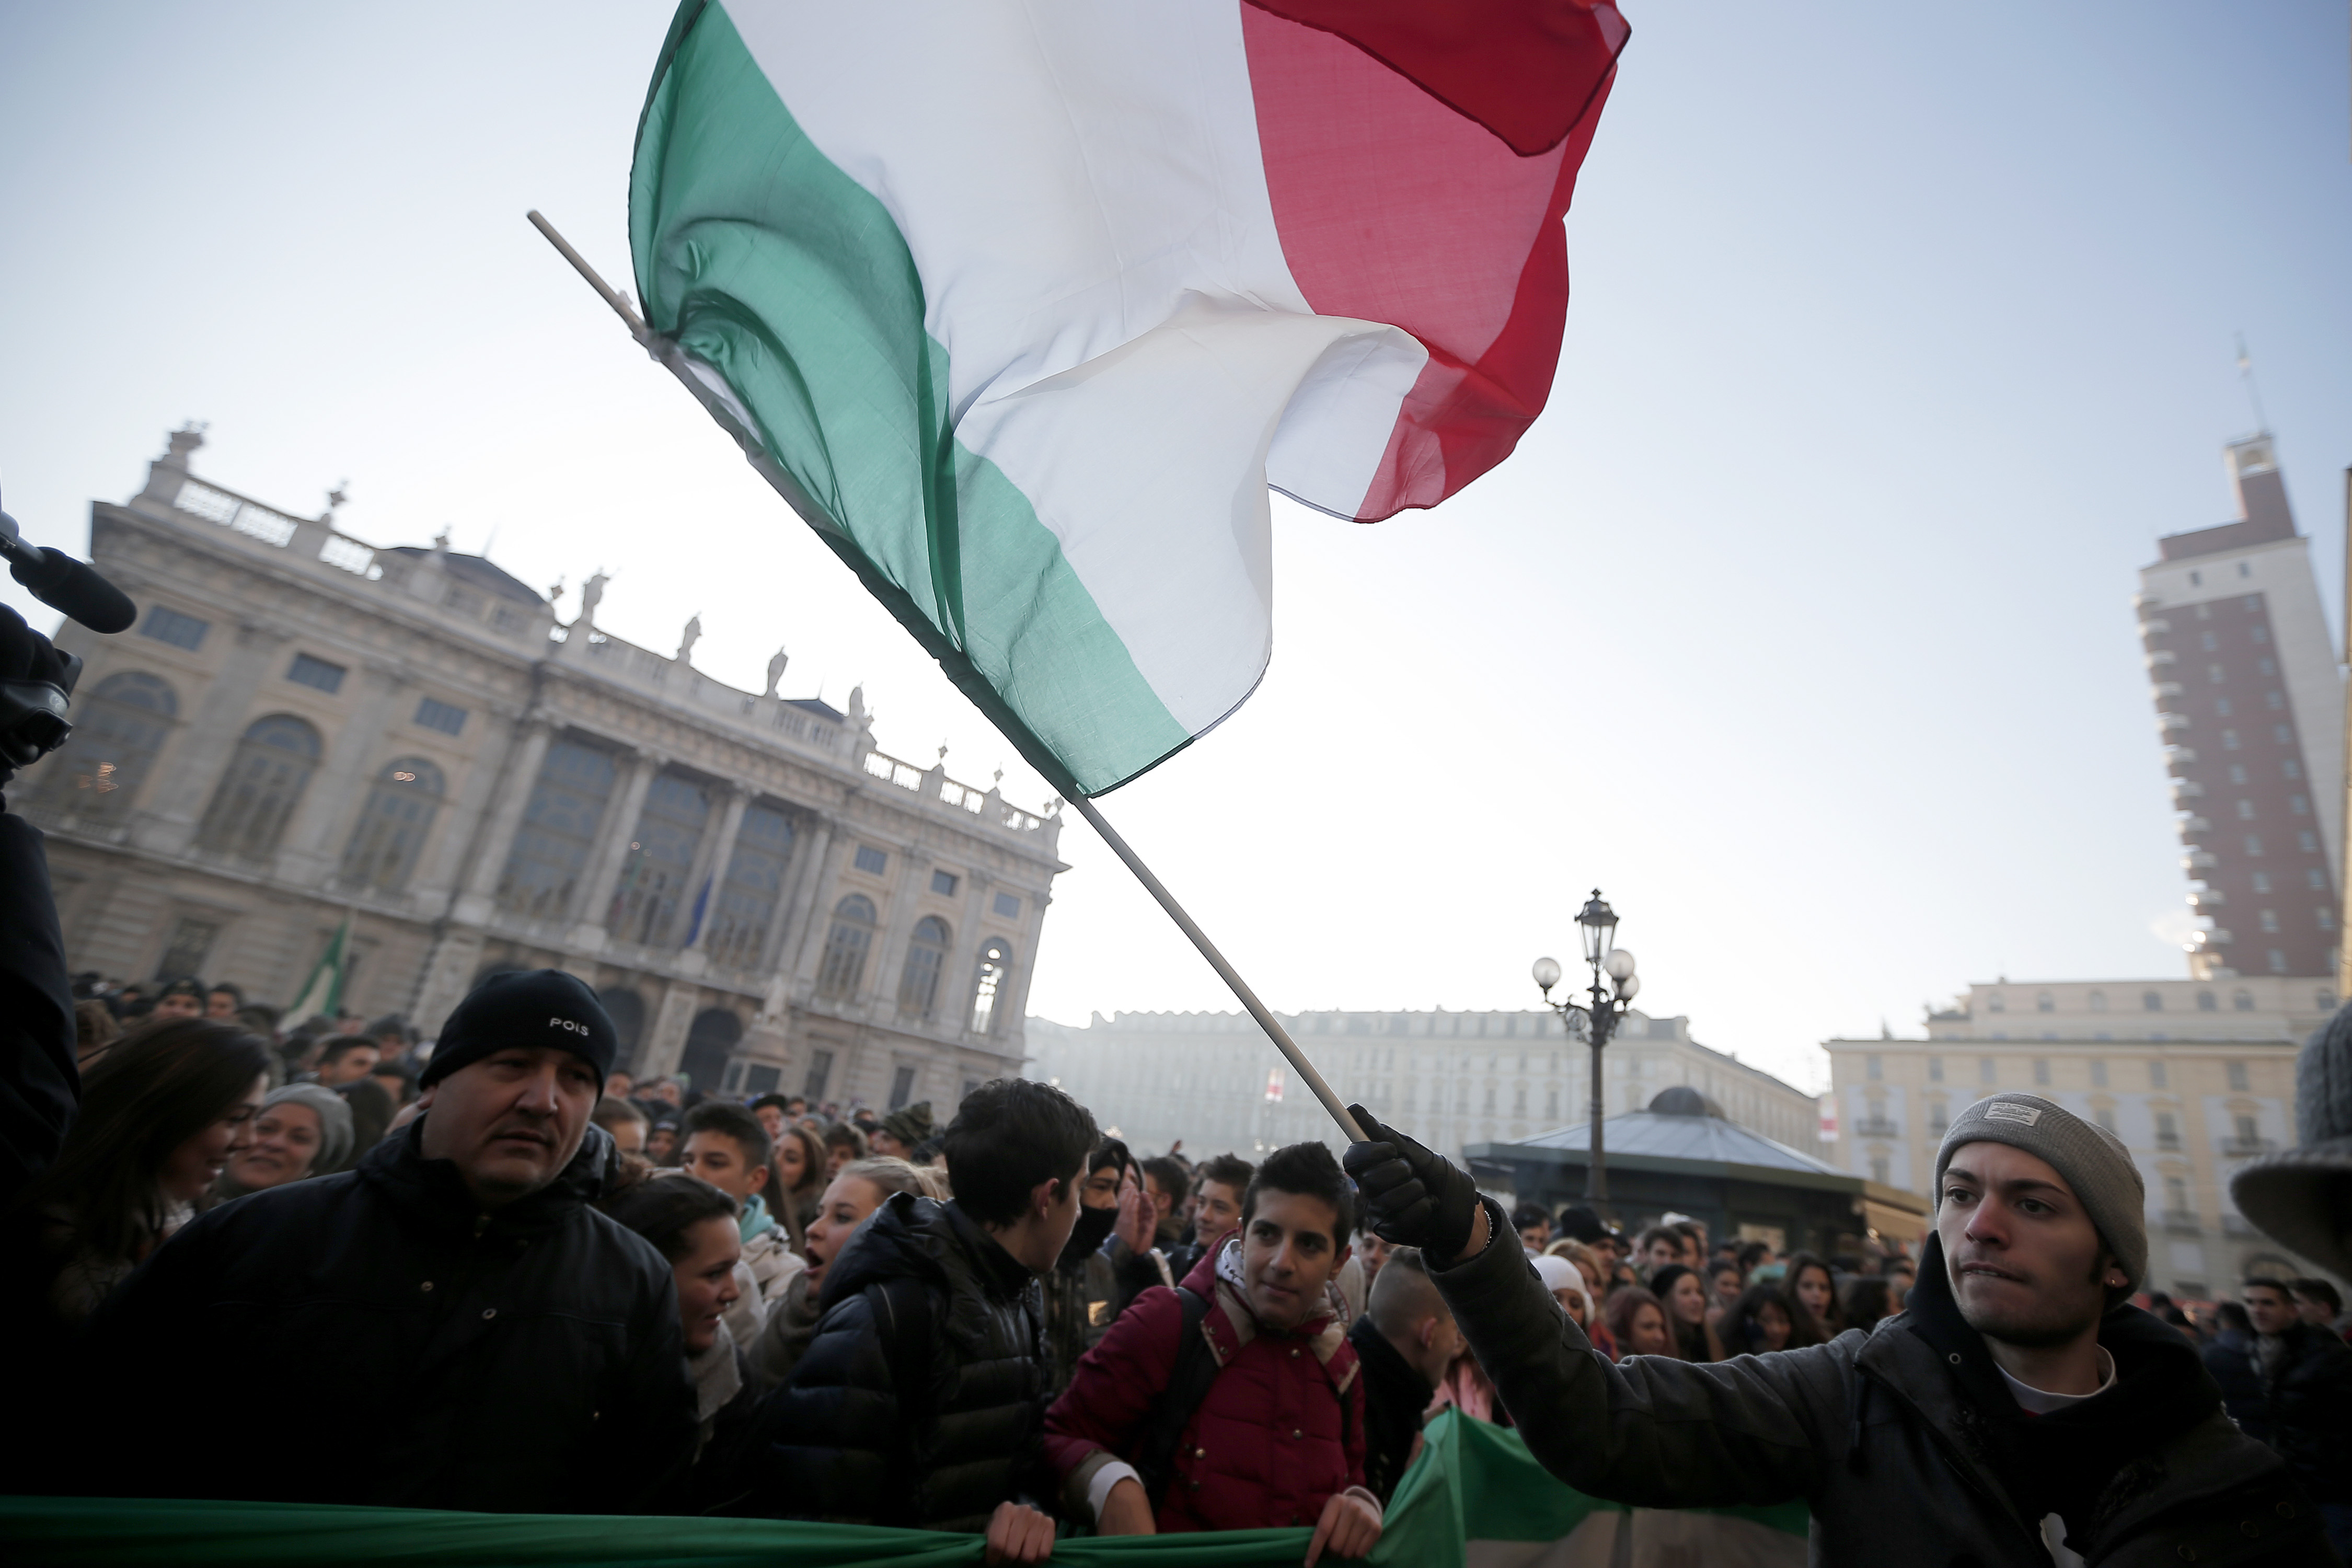 ITALY-GOVERNMENT-PROTEST-AUSTERITY